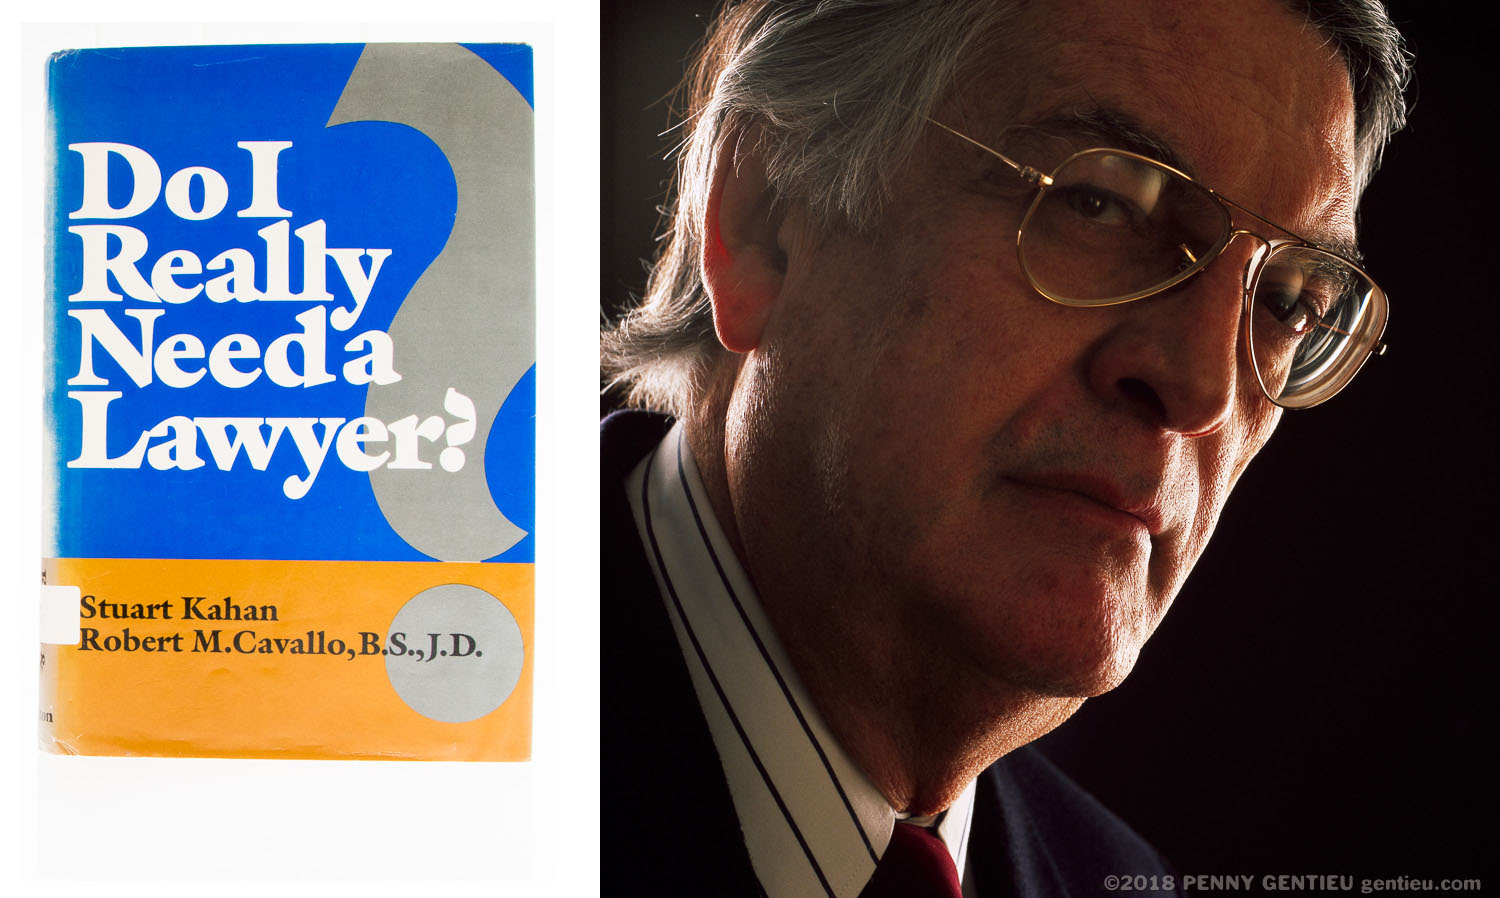 photo of Robert Cavallo and his book, Do I Really Need a Lawyer?